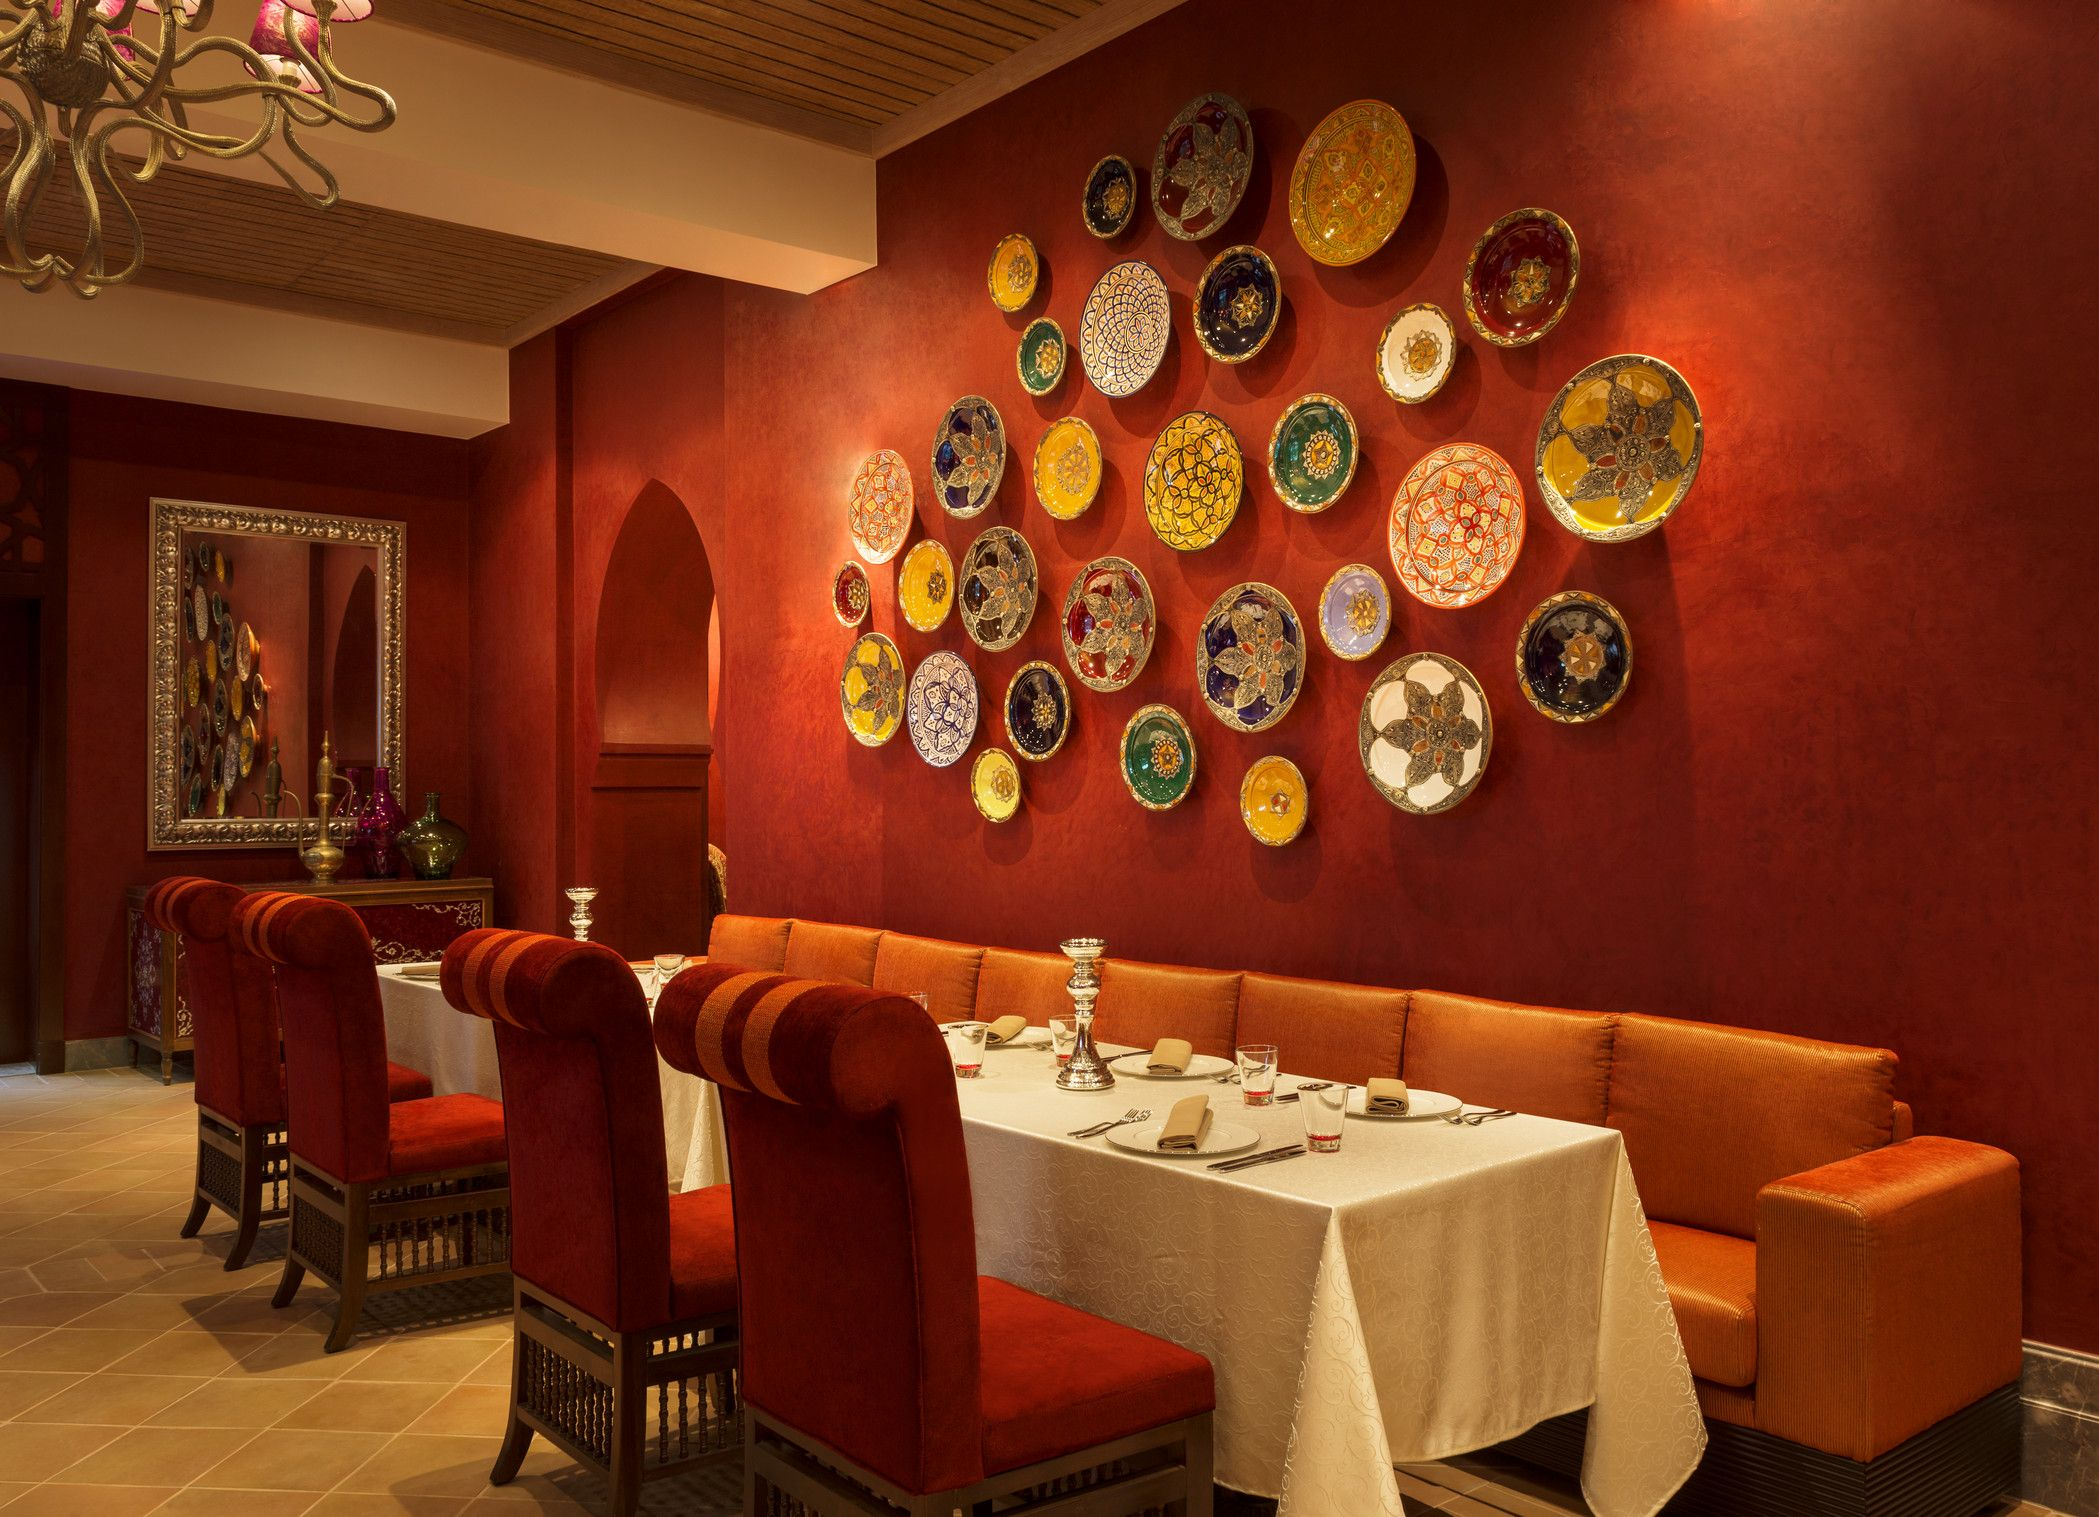 The Laid Back Style Of This A La Carte Dining Venue Sets Scene For Contemporary Arabic Cuisine